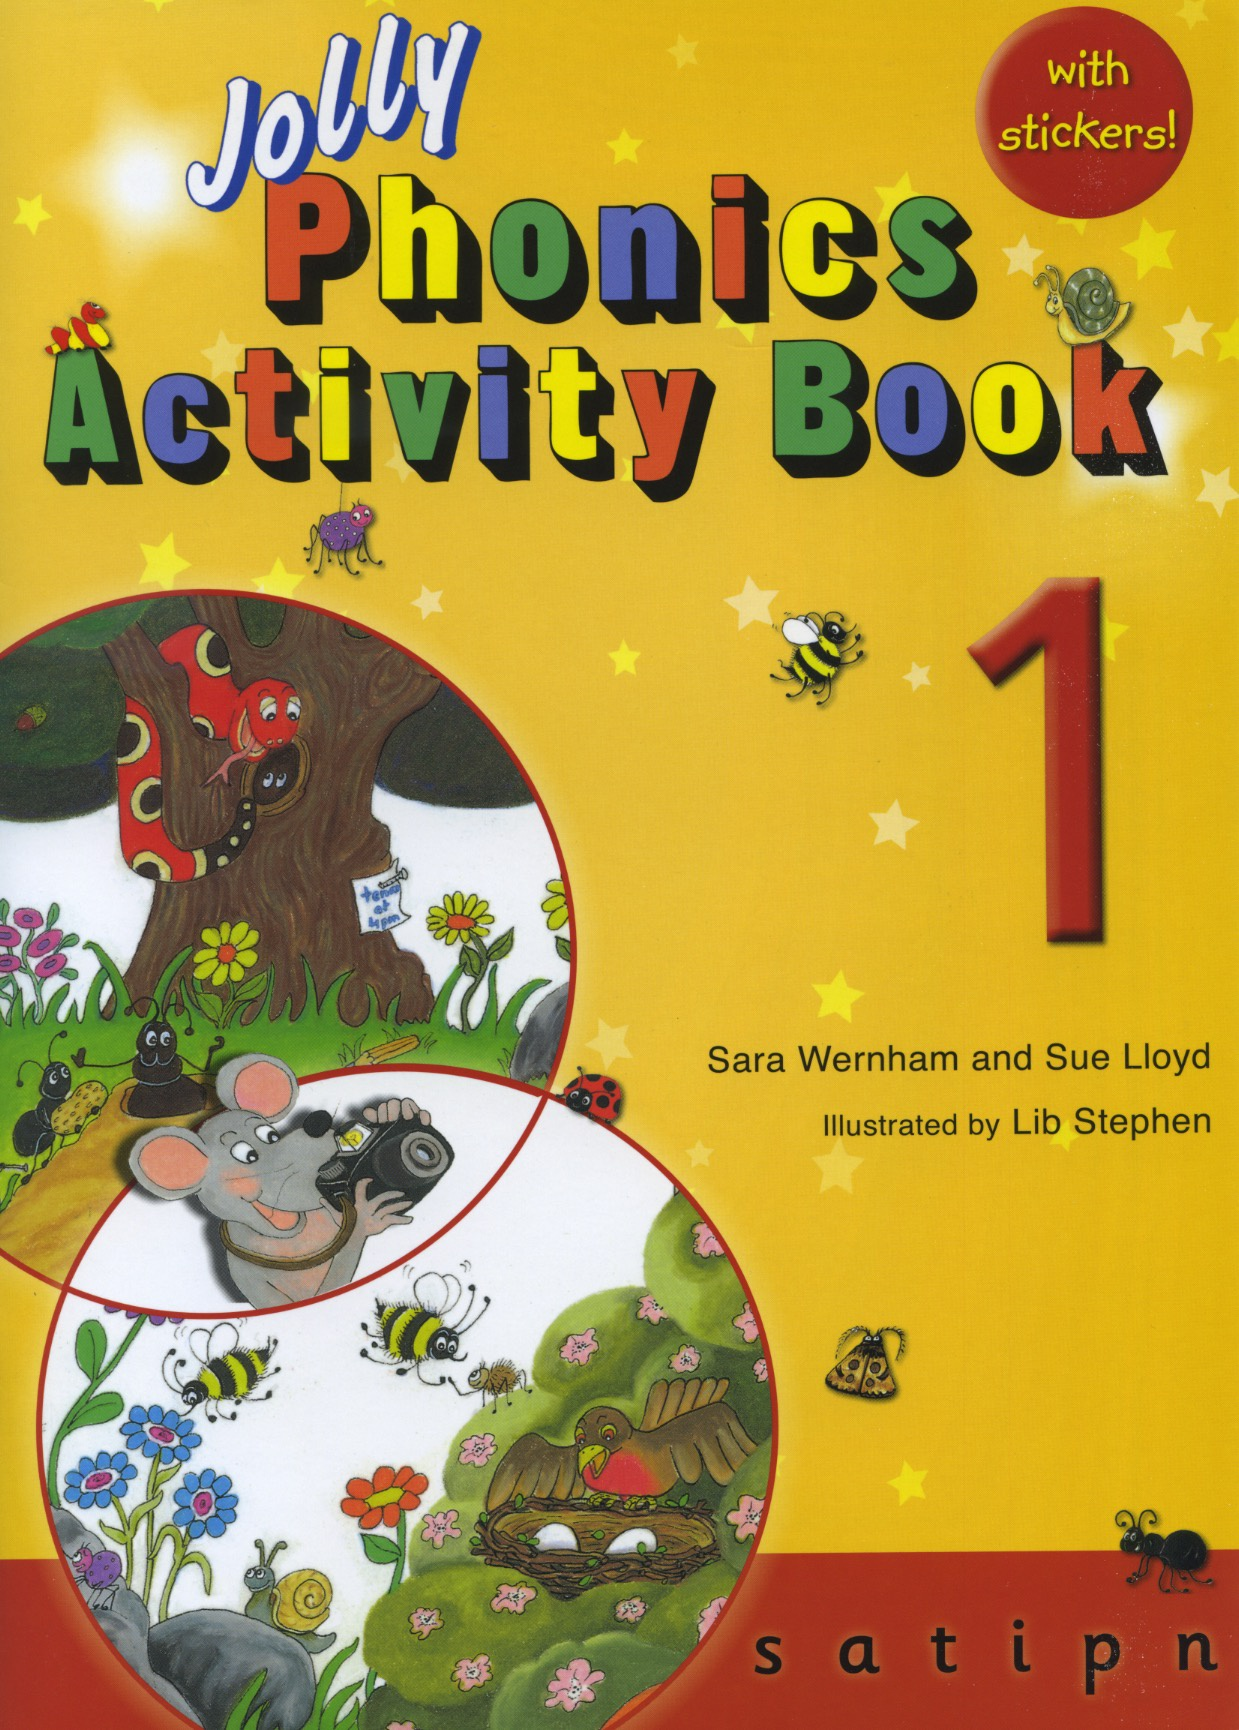 Jolly Phonics Activity Book 1-7 jolly phonics activity books set 1 7 комплект из 7 книг